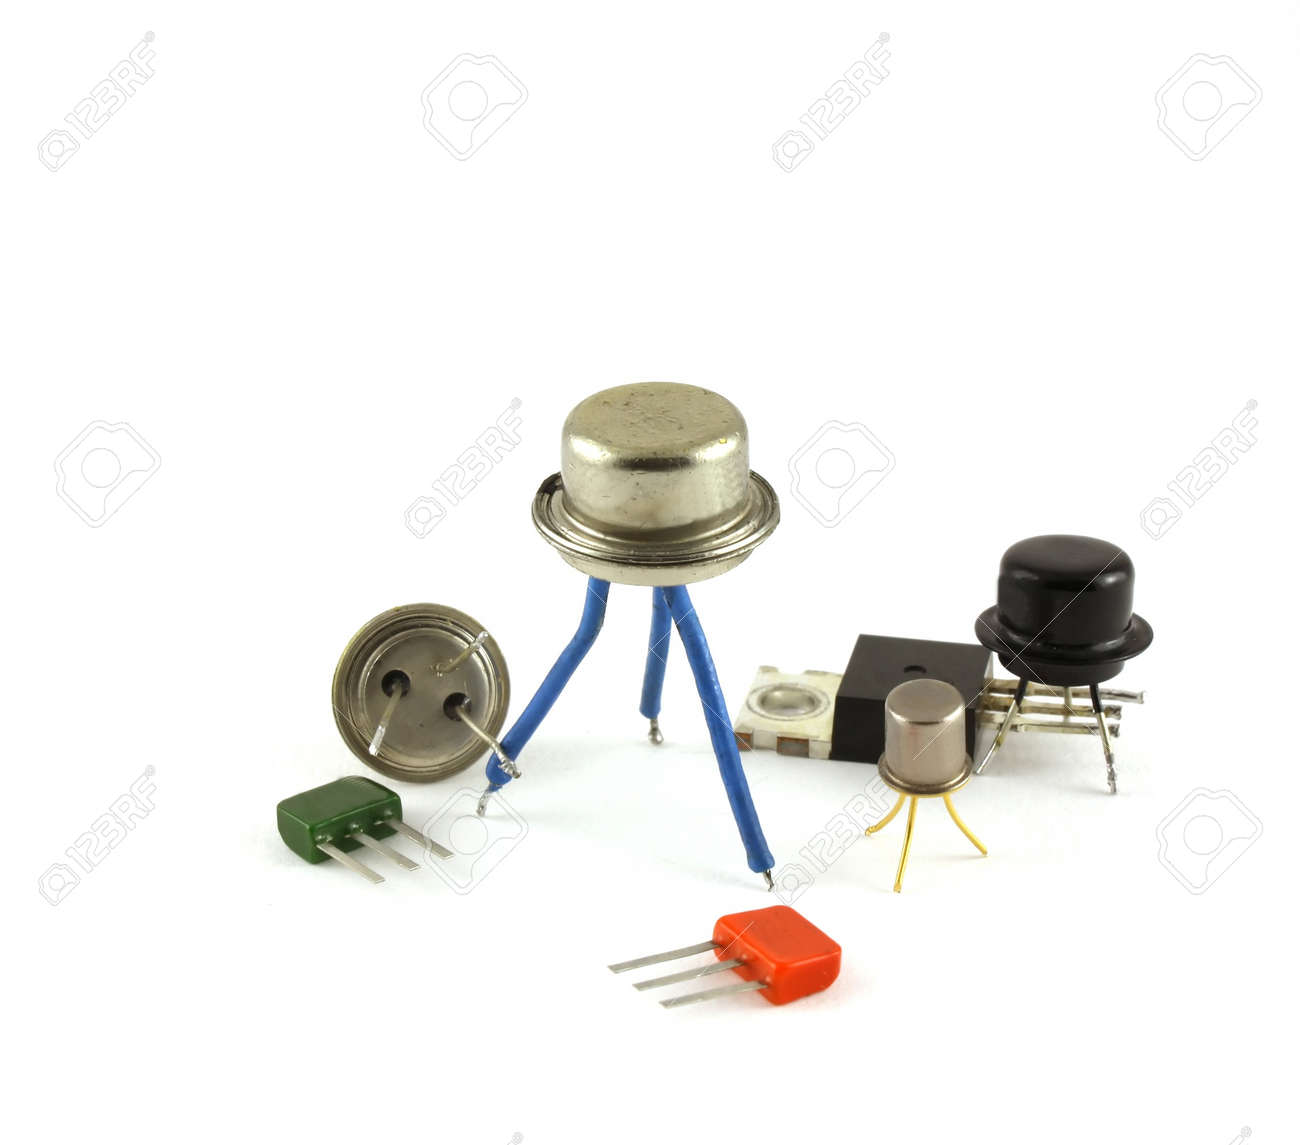 Electronic components - transistors Stock Photo - 6873117